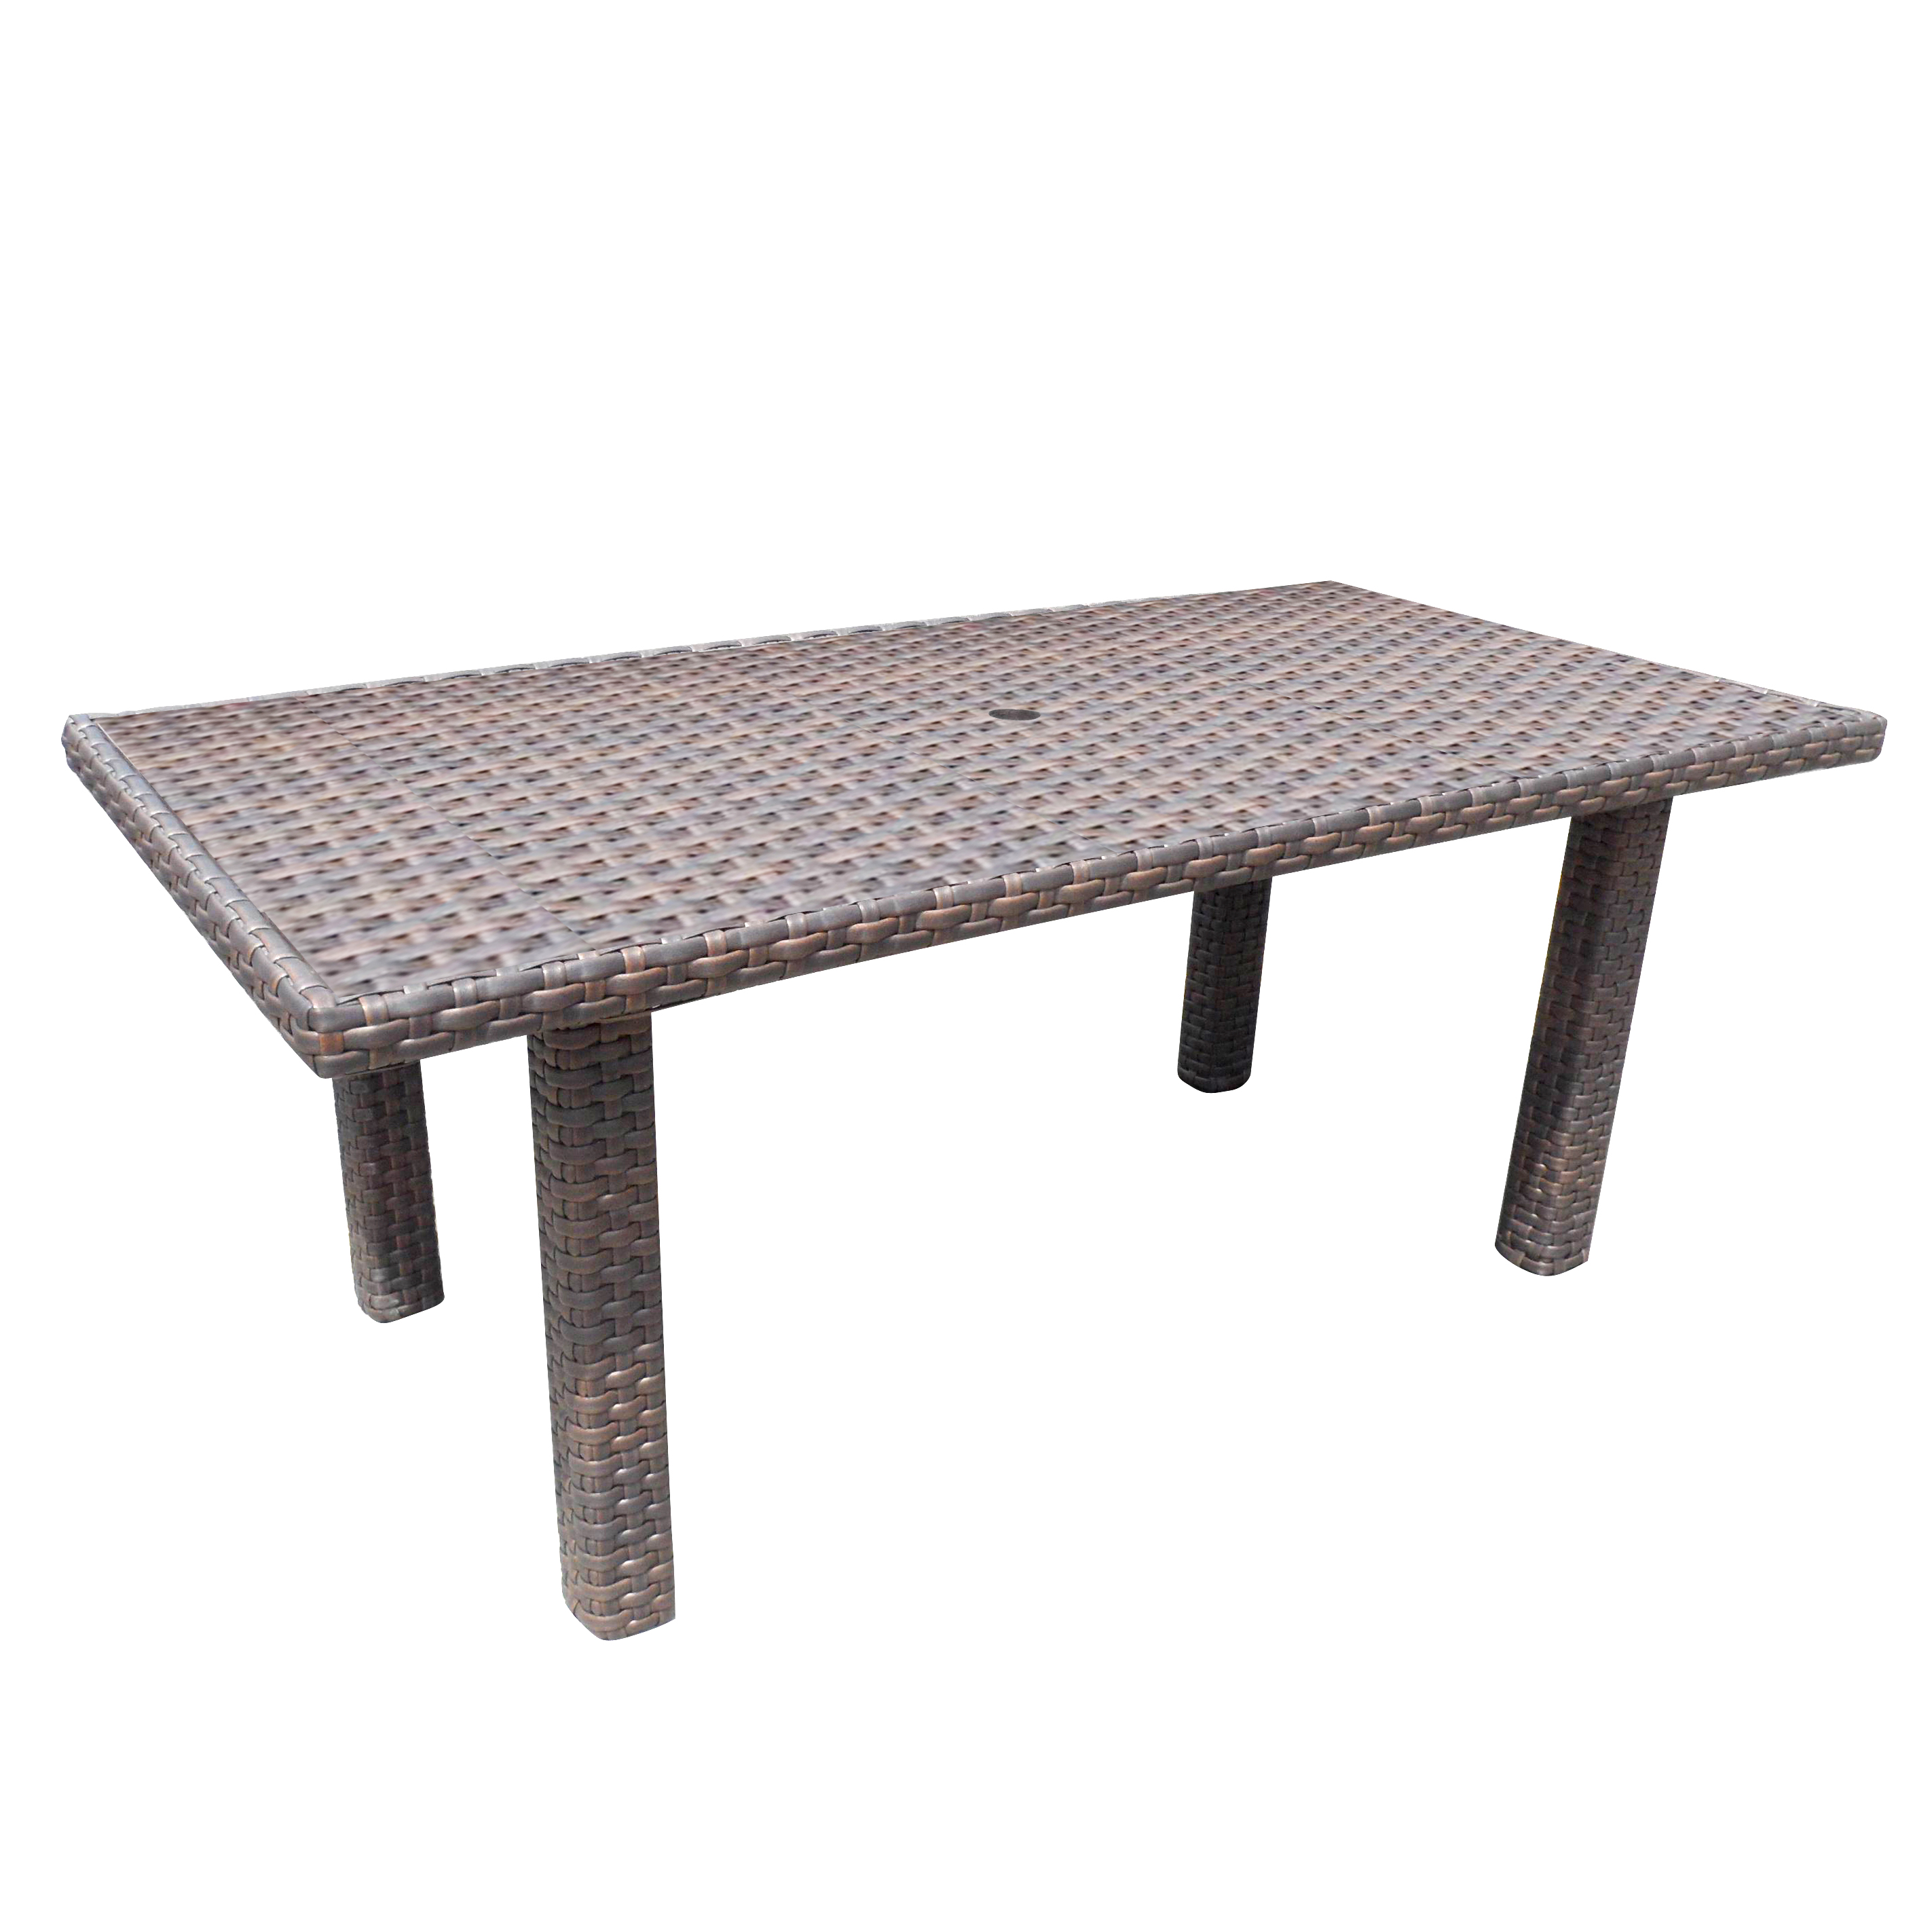 CONVERSATION TABLE RC1602 $410.00